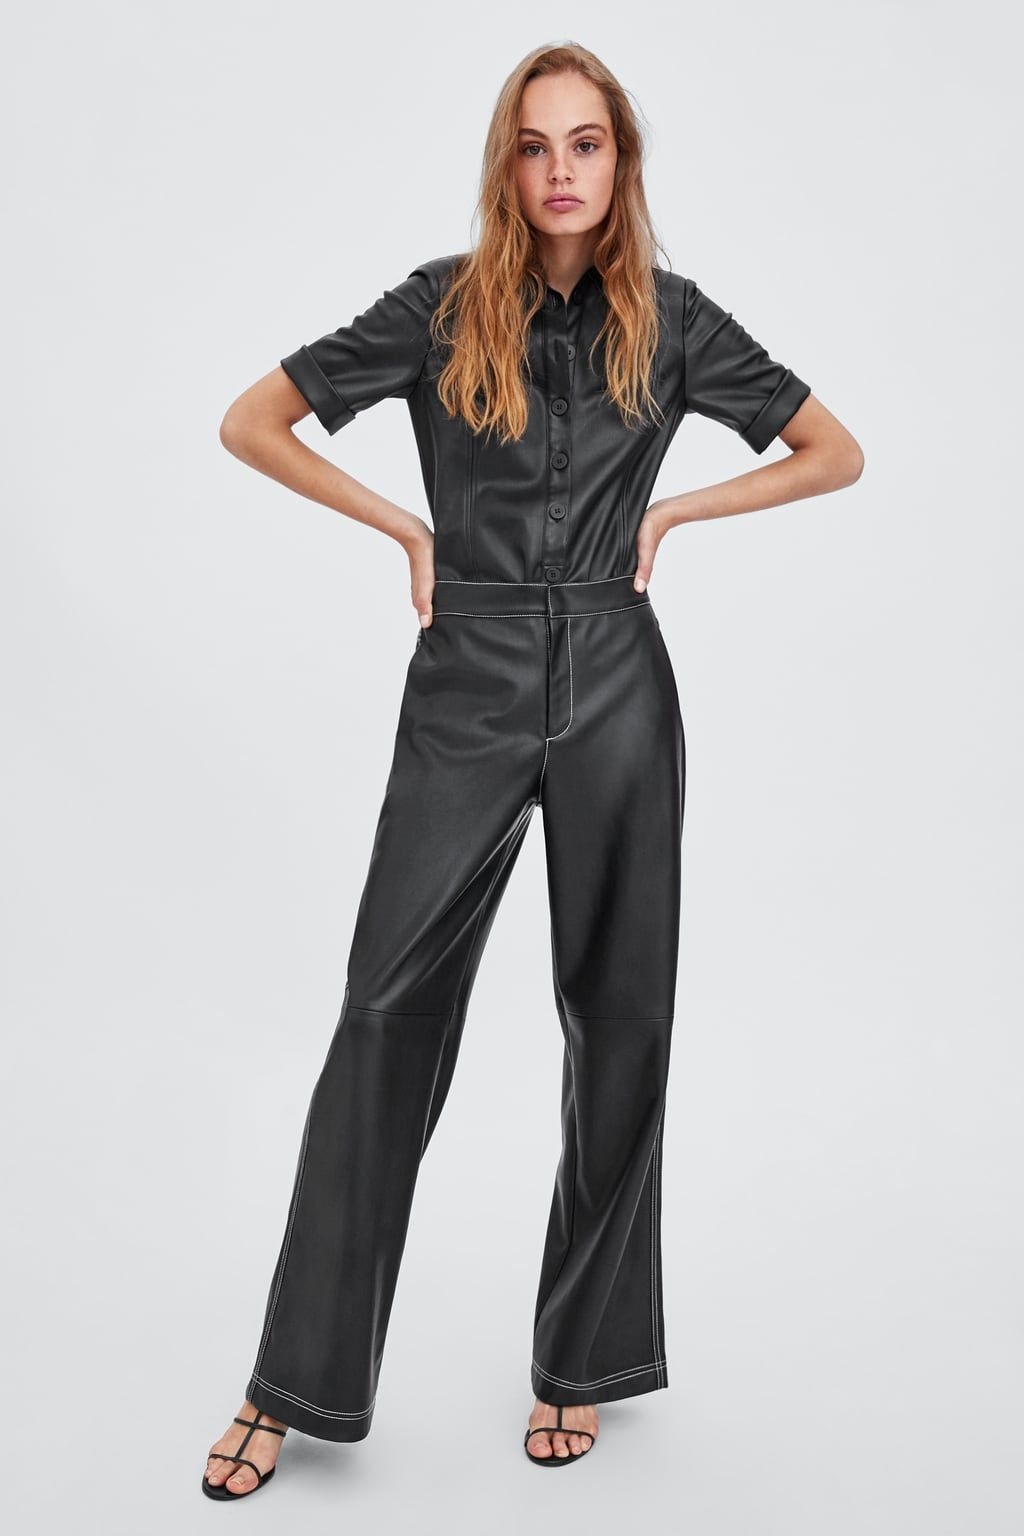 42b72f53 PANTALÓN EFECTO PIEL in 2019 | shopping | Leather trousers, Faux ...